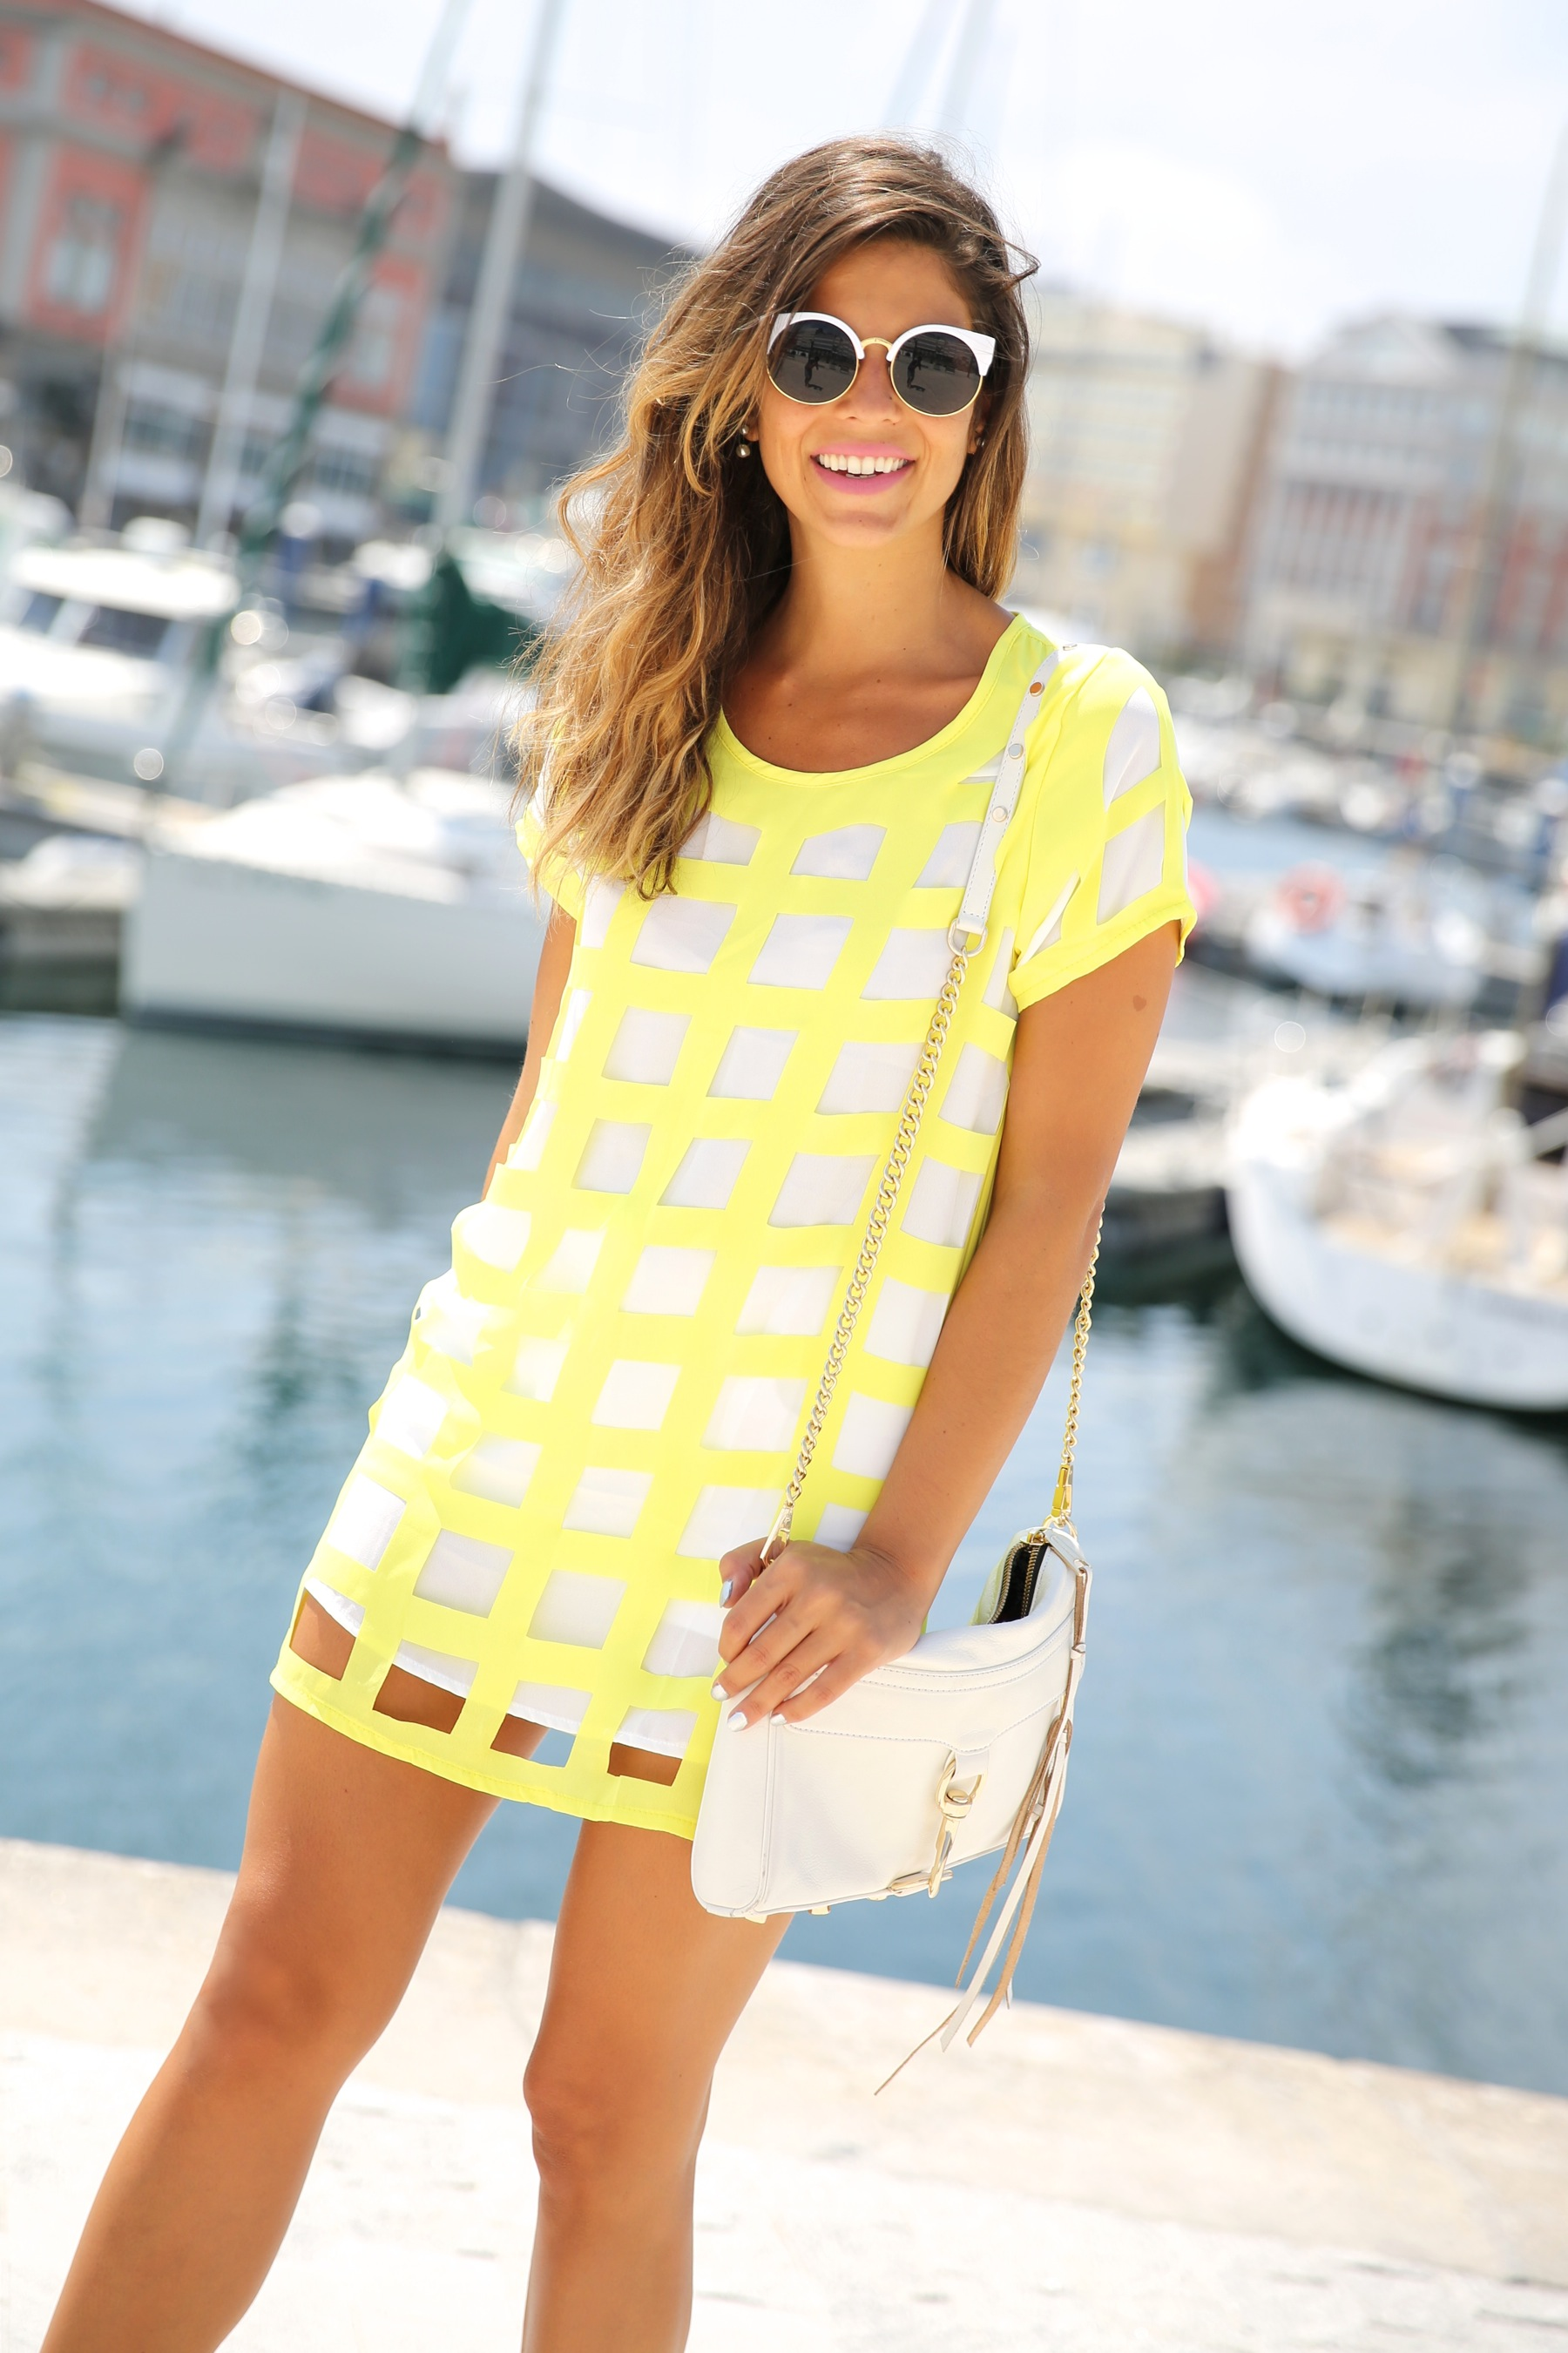 trendy_taste-look-outfit-street_style-ootd-blog-blogger-moda_españa-fashion_spain-coruña-galicia-sandalias_plataforma-platform_sandals-rebecca_minkoff-yellow-amarillo-vestido-dress-plaid-cuadros-7